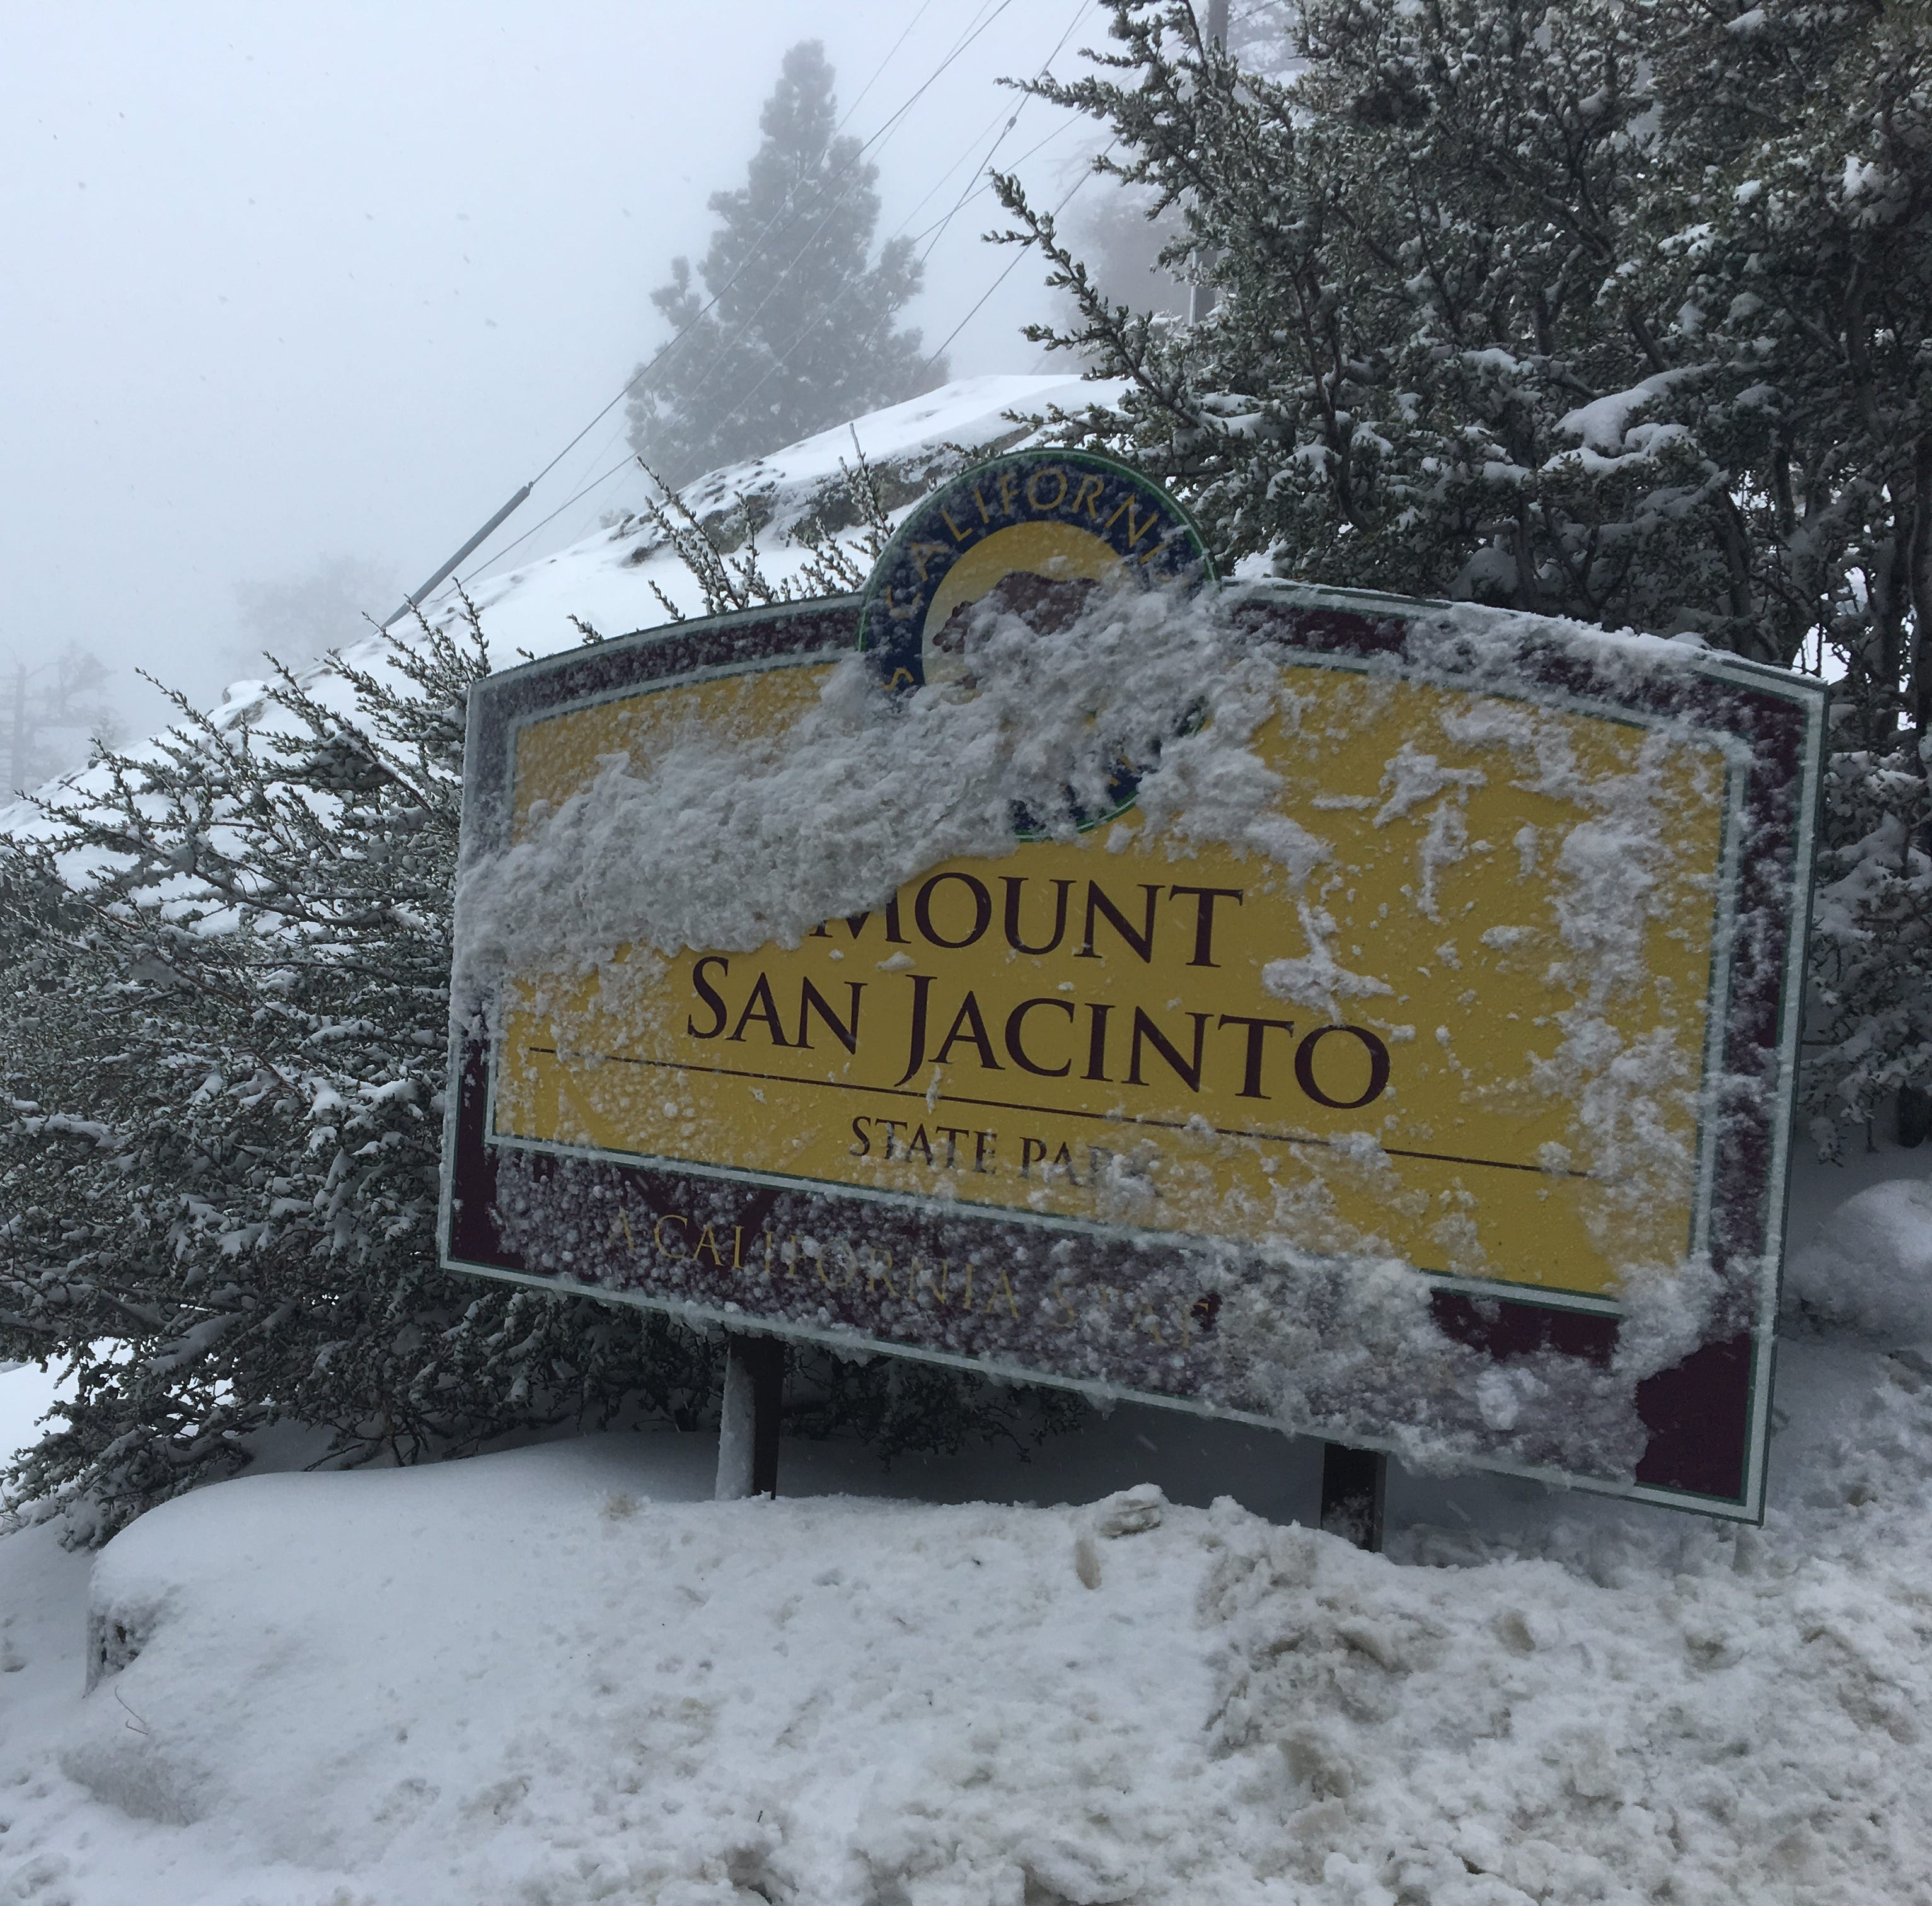 5 inches of snow or more at highest elevations expected by early Wednesday, forecasters say